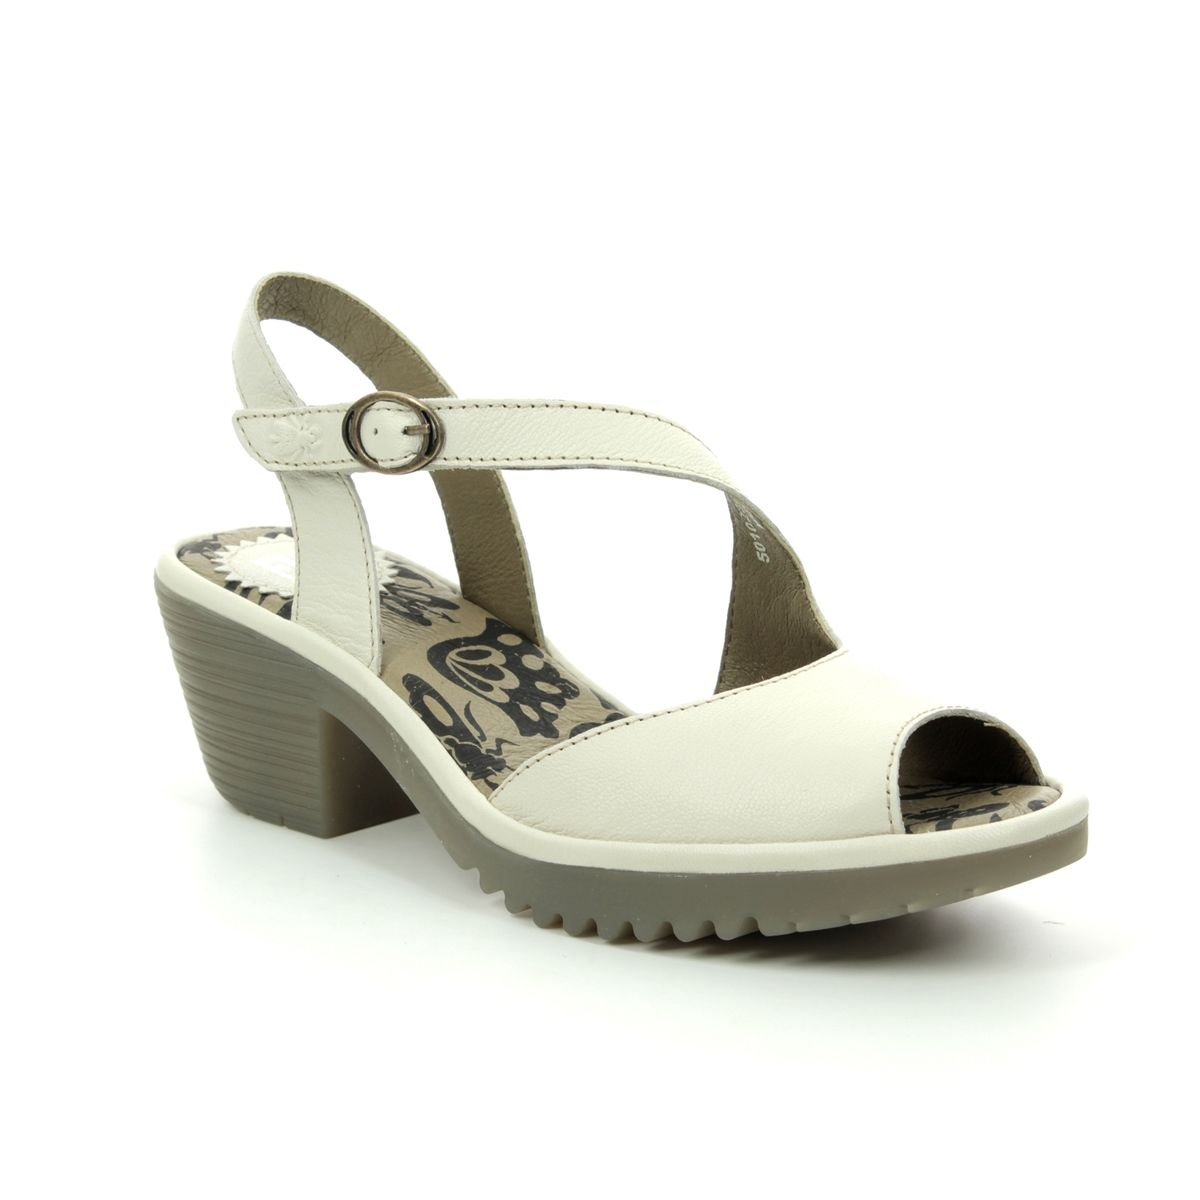 00c6561e4a5 Fly London Wyno P501023-001 Off-white Wedge Sandals